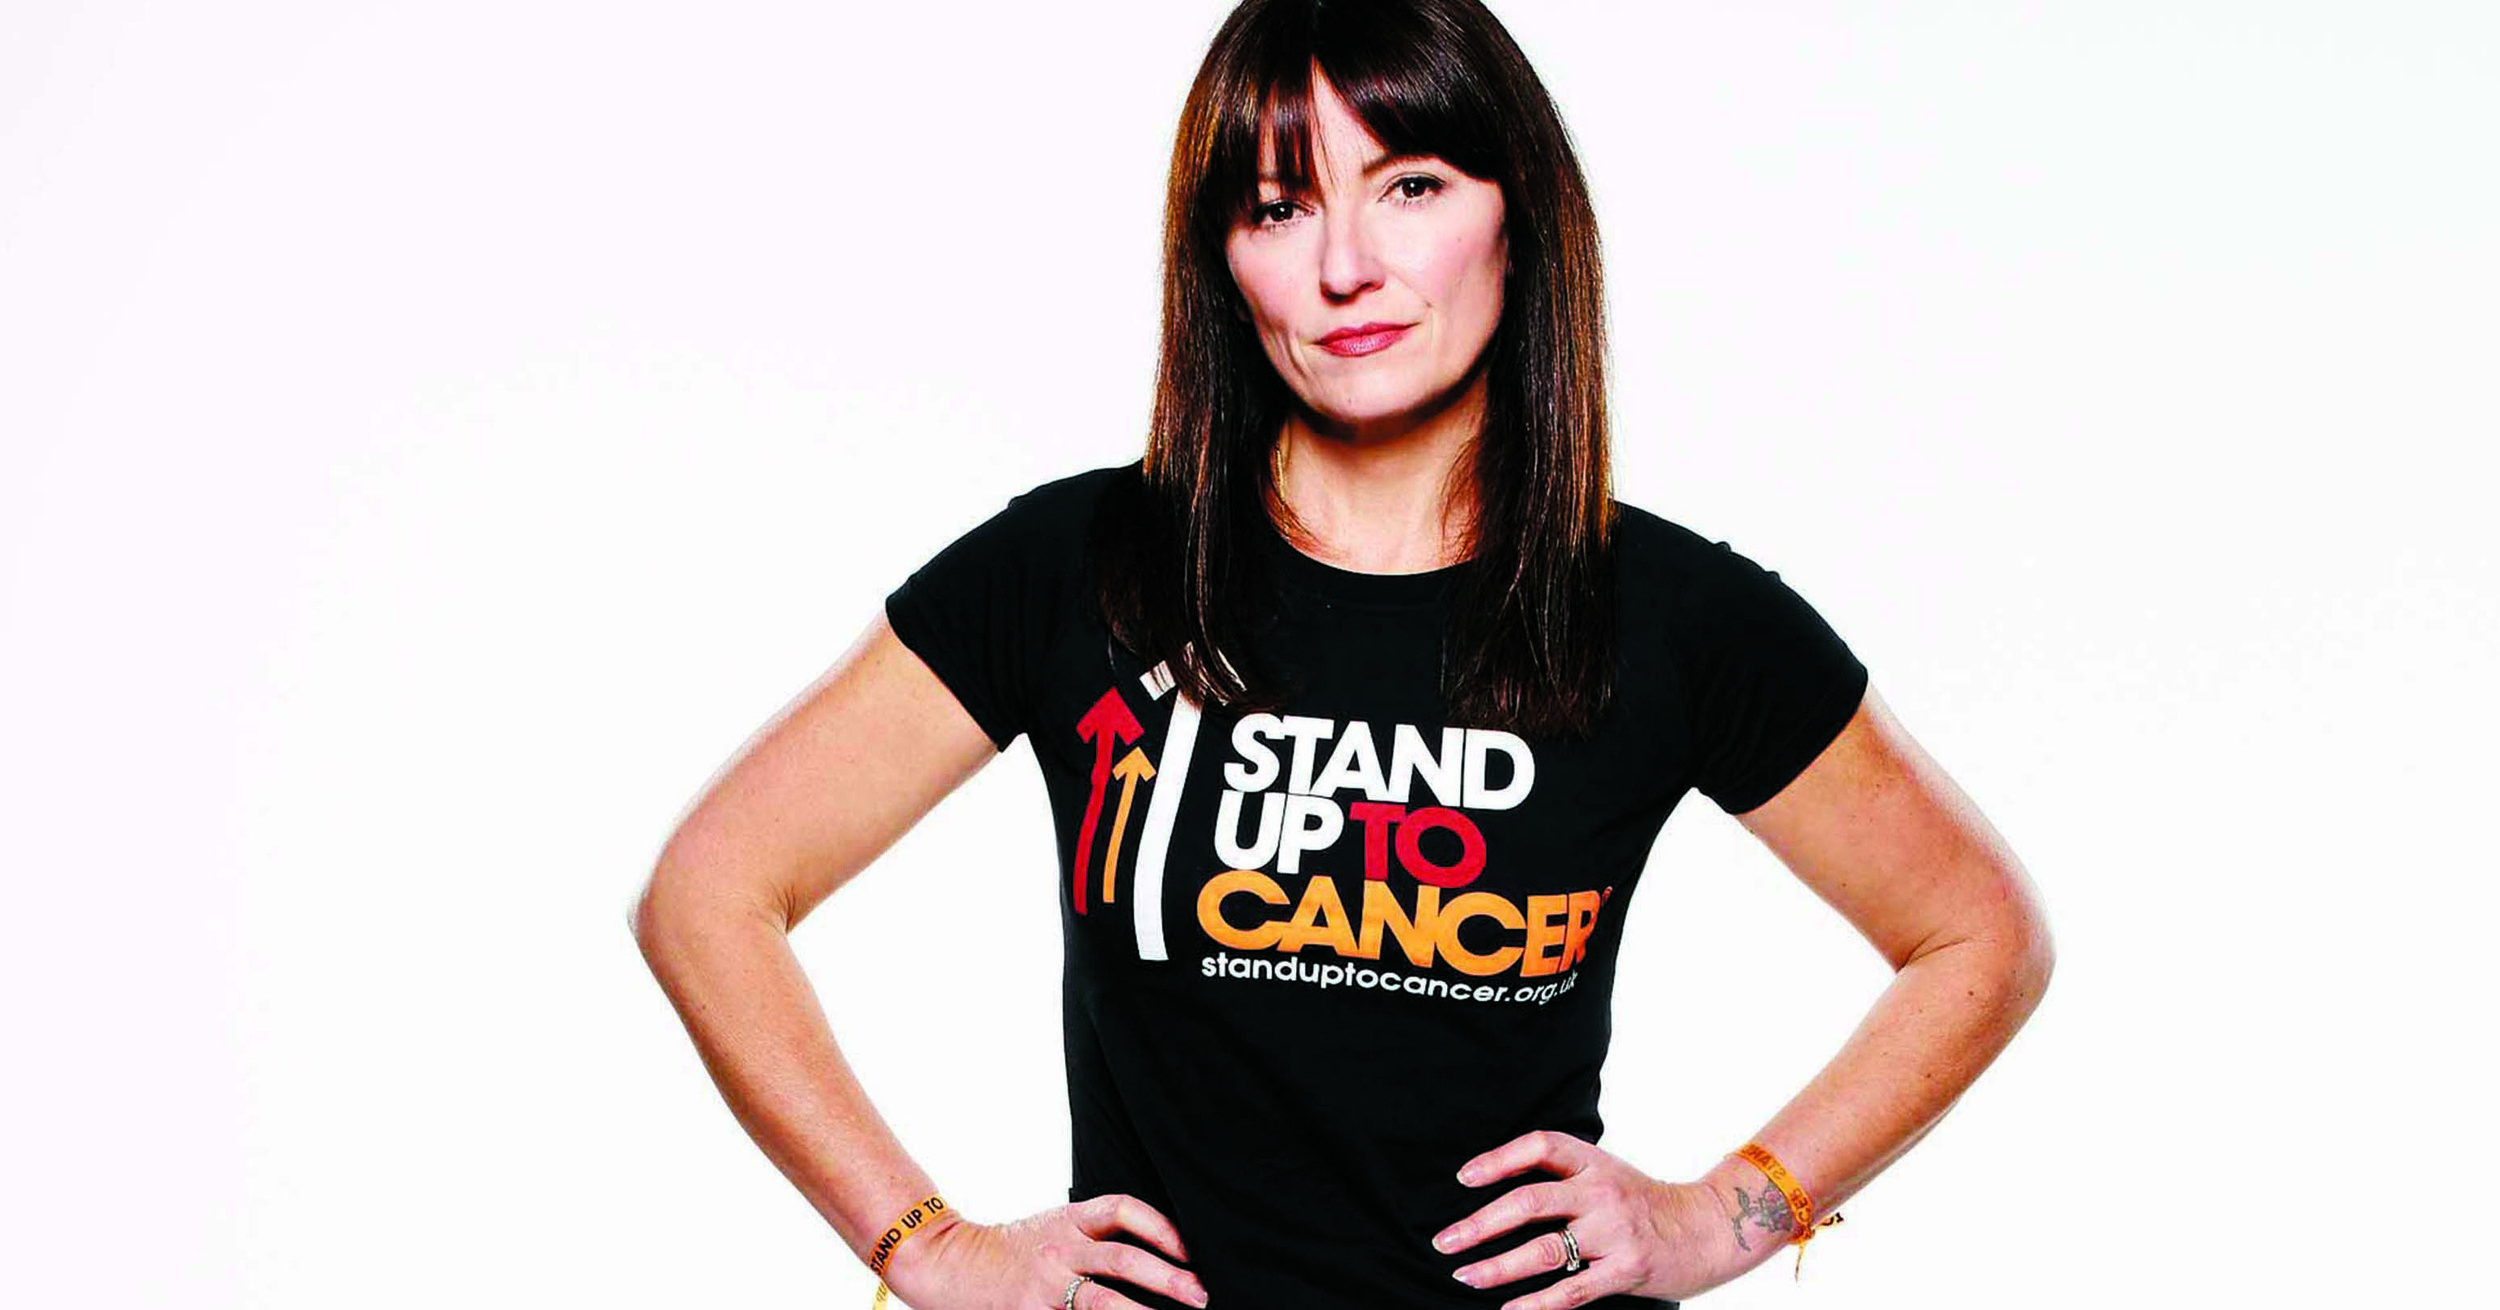 'Stand Up To Cancer' (C4) - Edit Producer